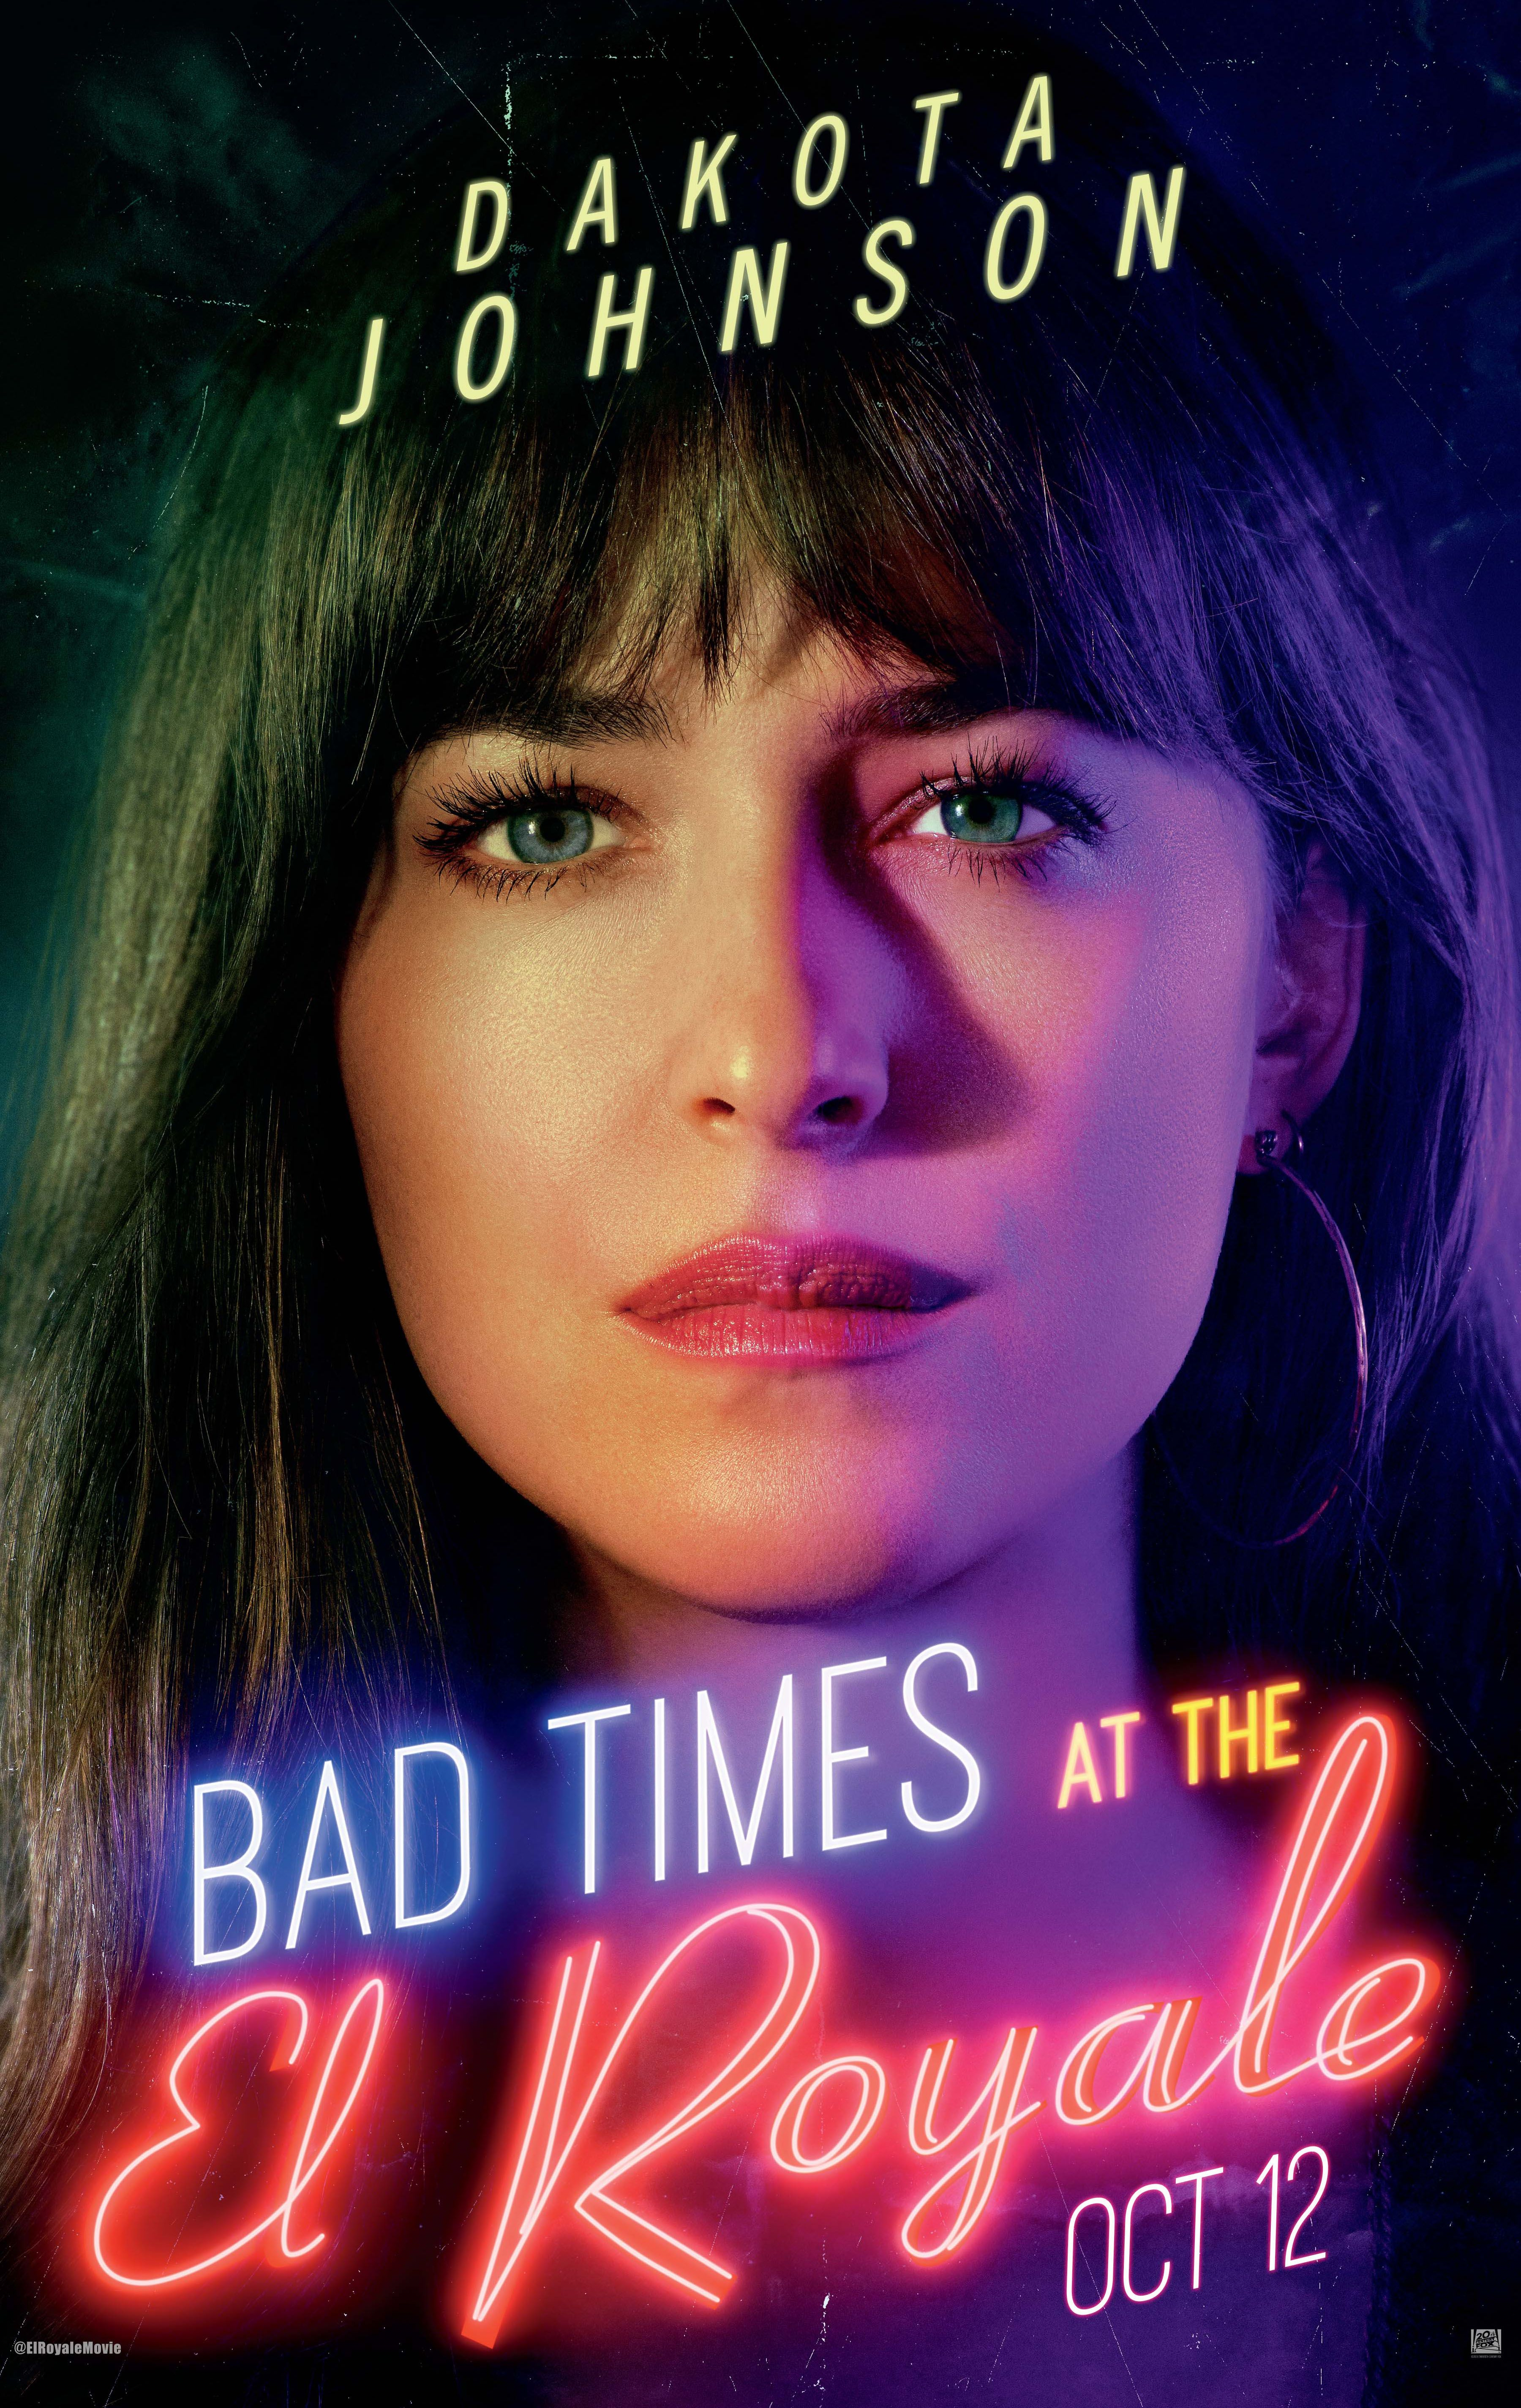 Bad Times at the El Royale Posters Reveal the Cast | Collider